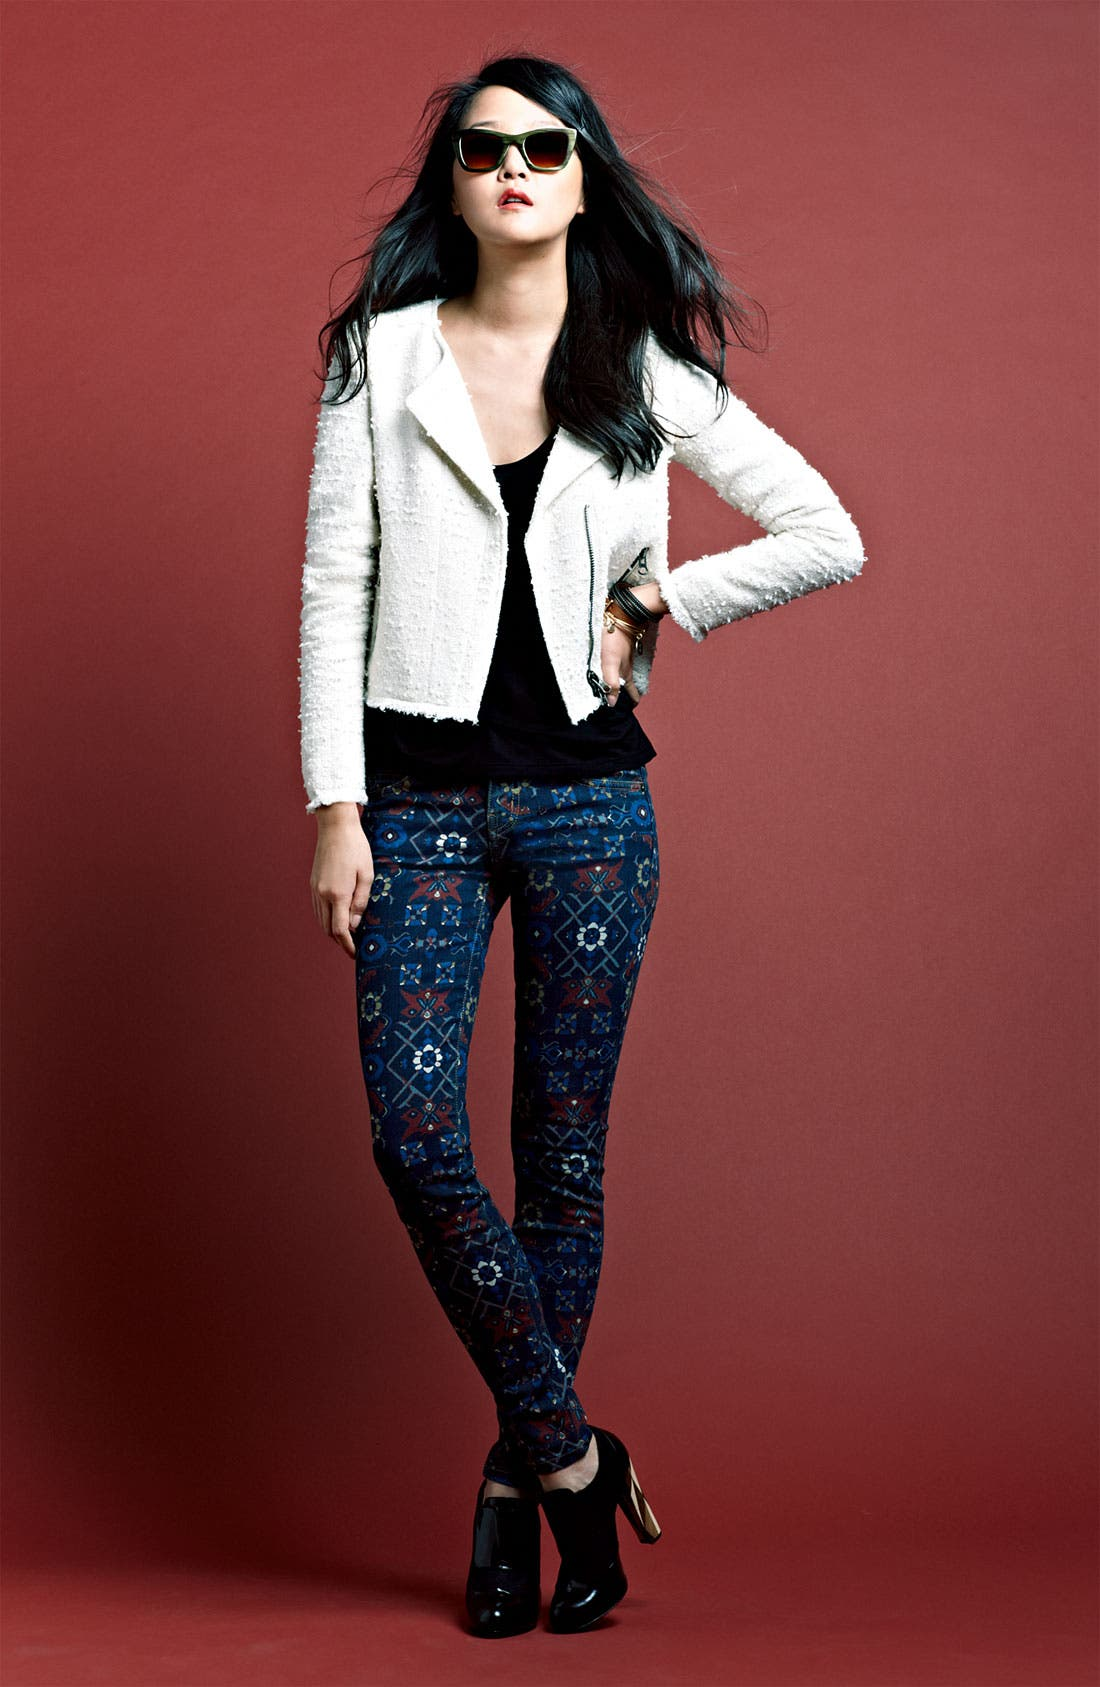 Main Image - Truth & Pride Jacket, Soft Joie Top & Current/Elliott Jeans